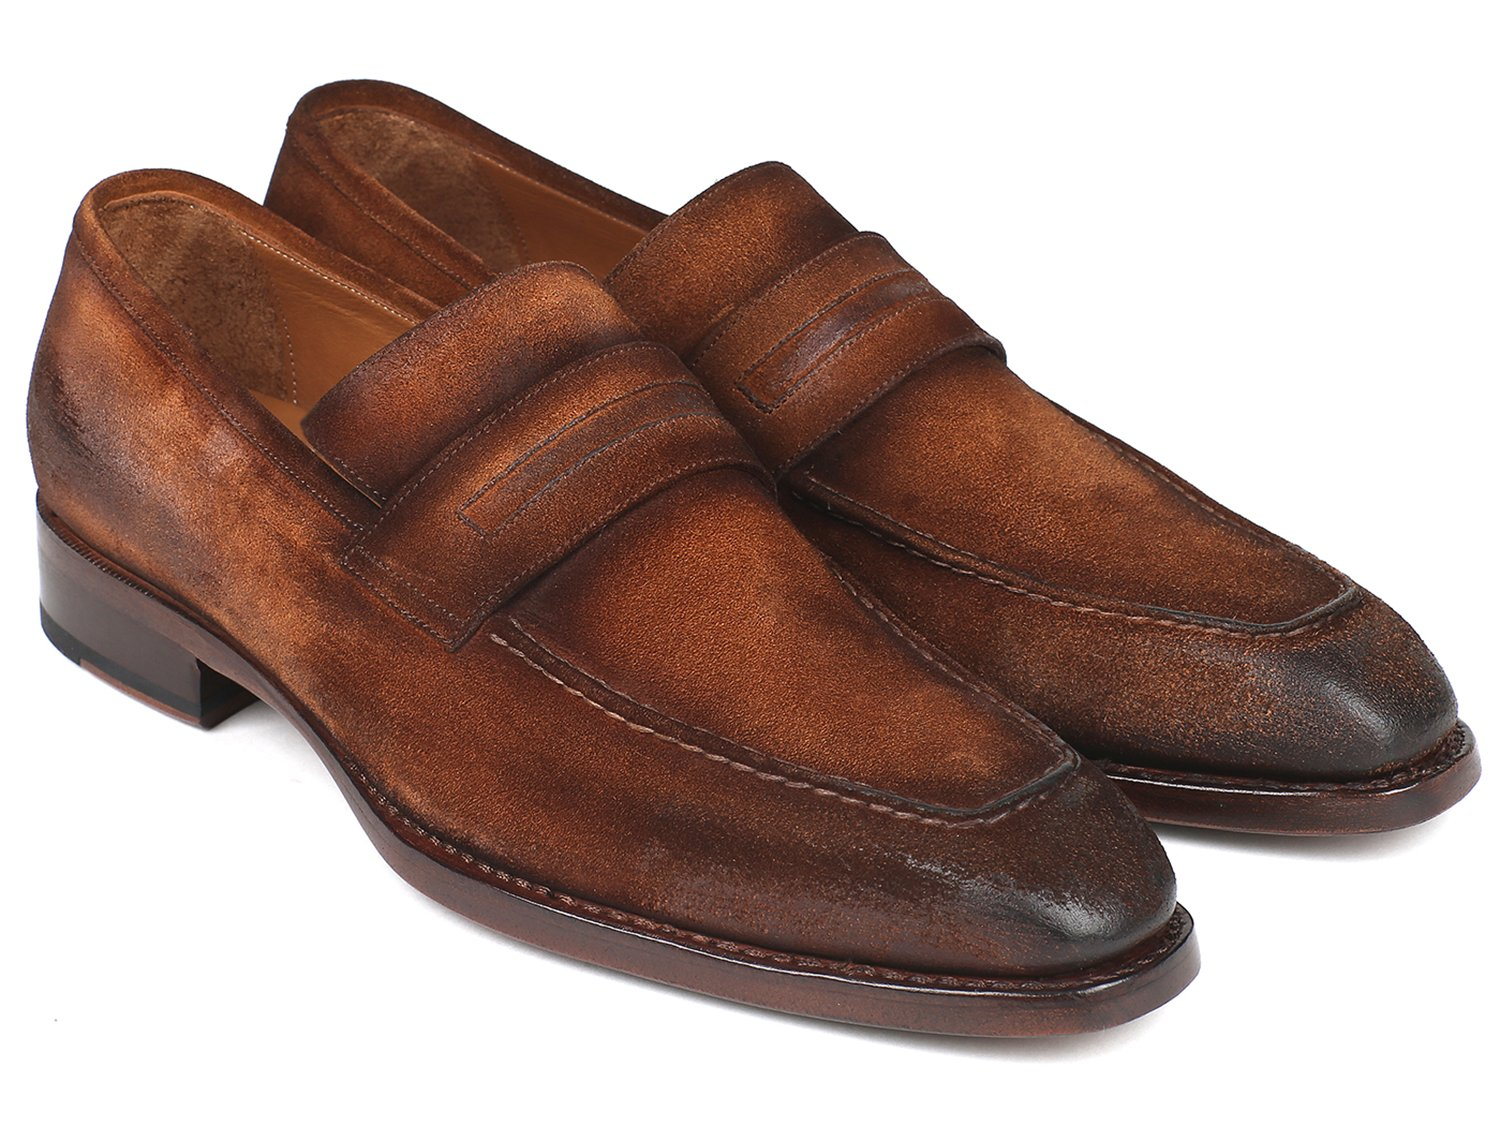 Paul Parkman Brown Antique Suede Goodyear Welted Loafers (ID#36AQ17)